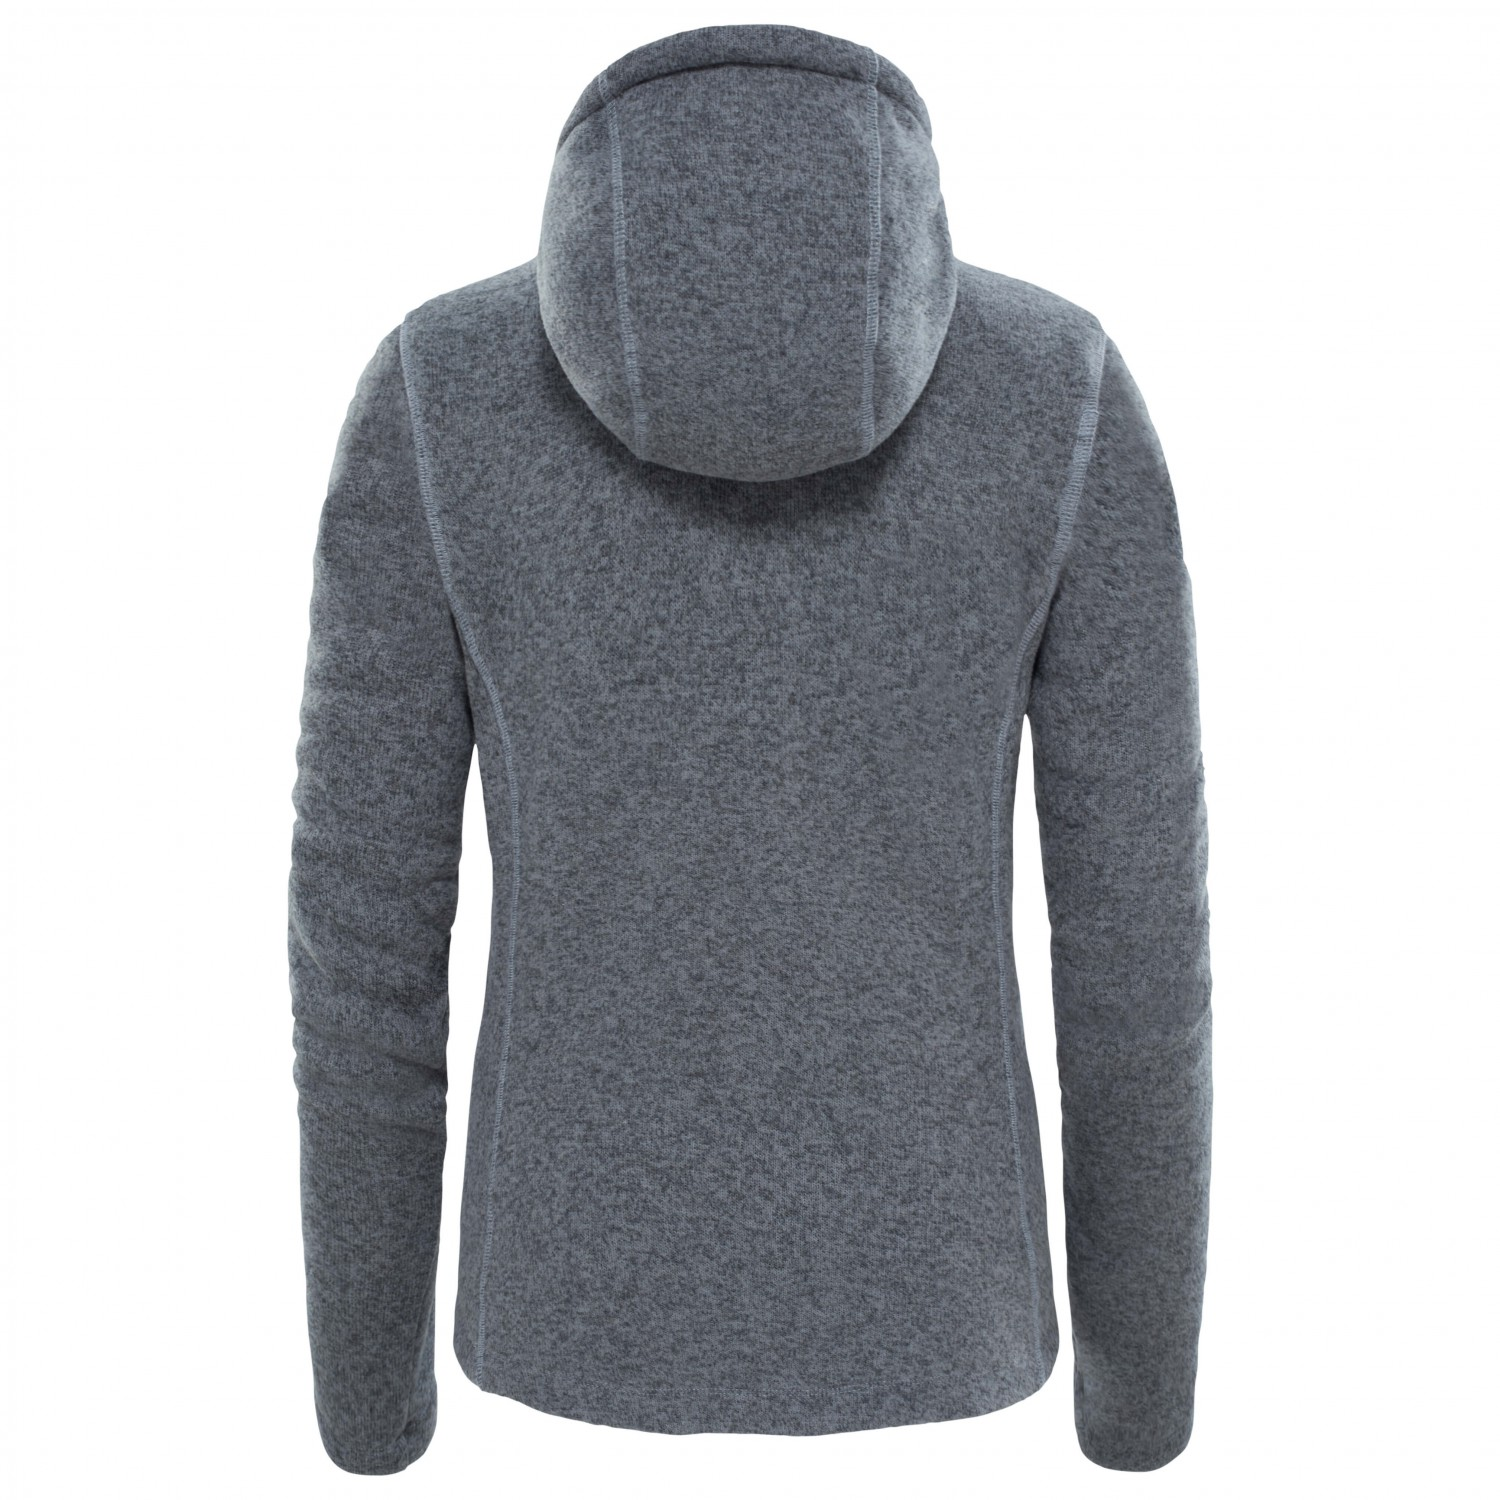 North face crescent hoodie